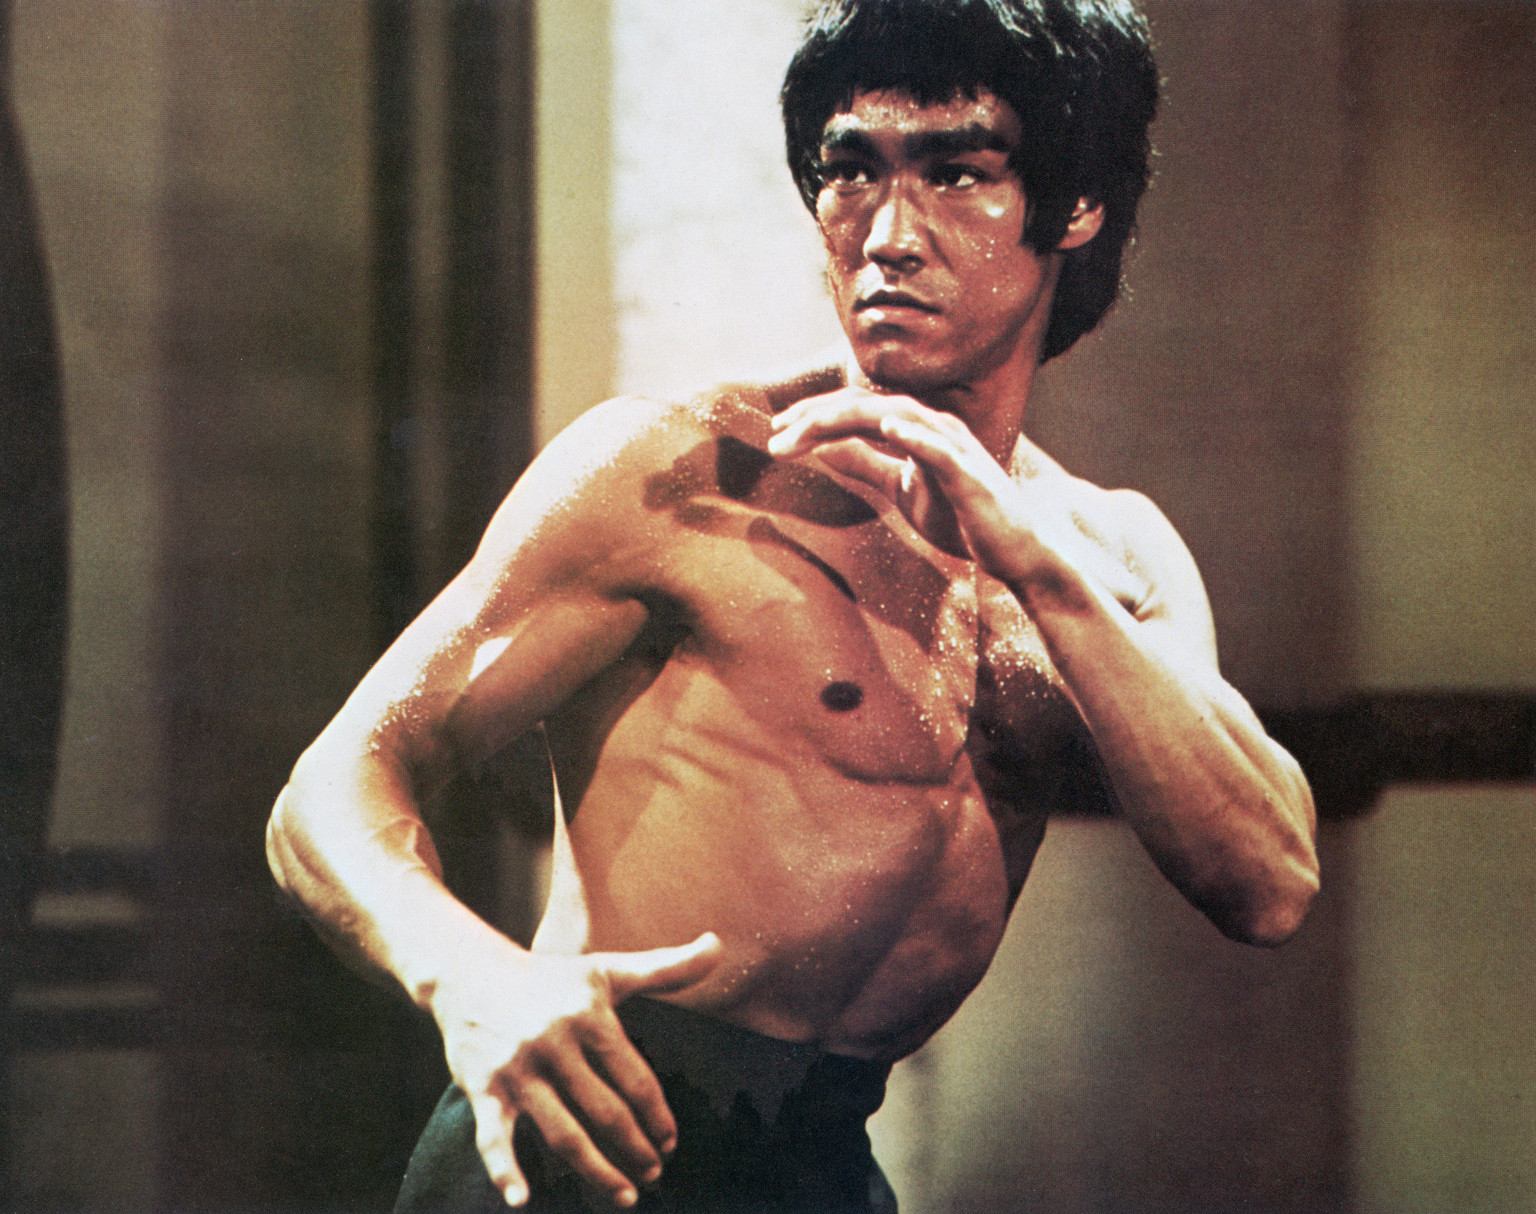 Chinese-American martial arts exponent Bruce Lee (1940 - 1973), in a karate stance, early 1970s. (Photo by Archive Photos/Getty Images)